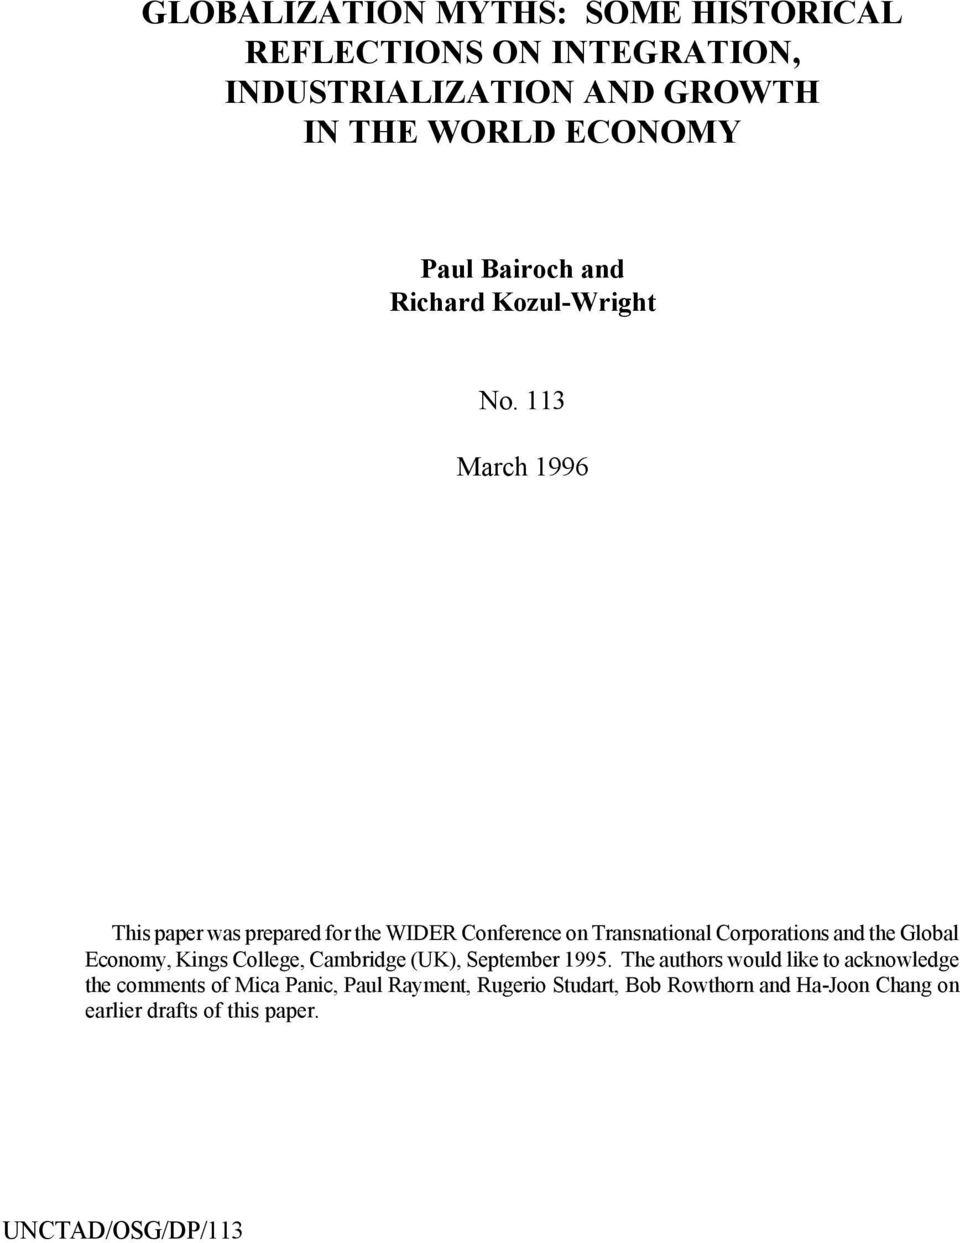 113 March 1996 This paper was prepared for the WIDER Conference on Transnational Corporations and the Global Economy, Kings